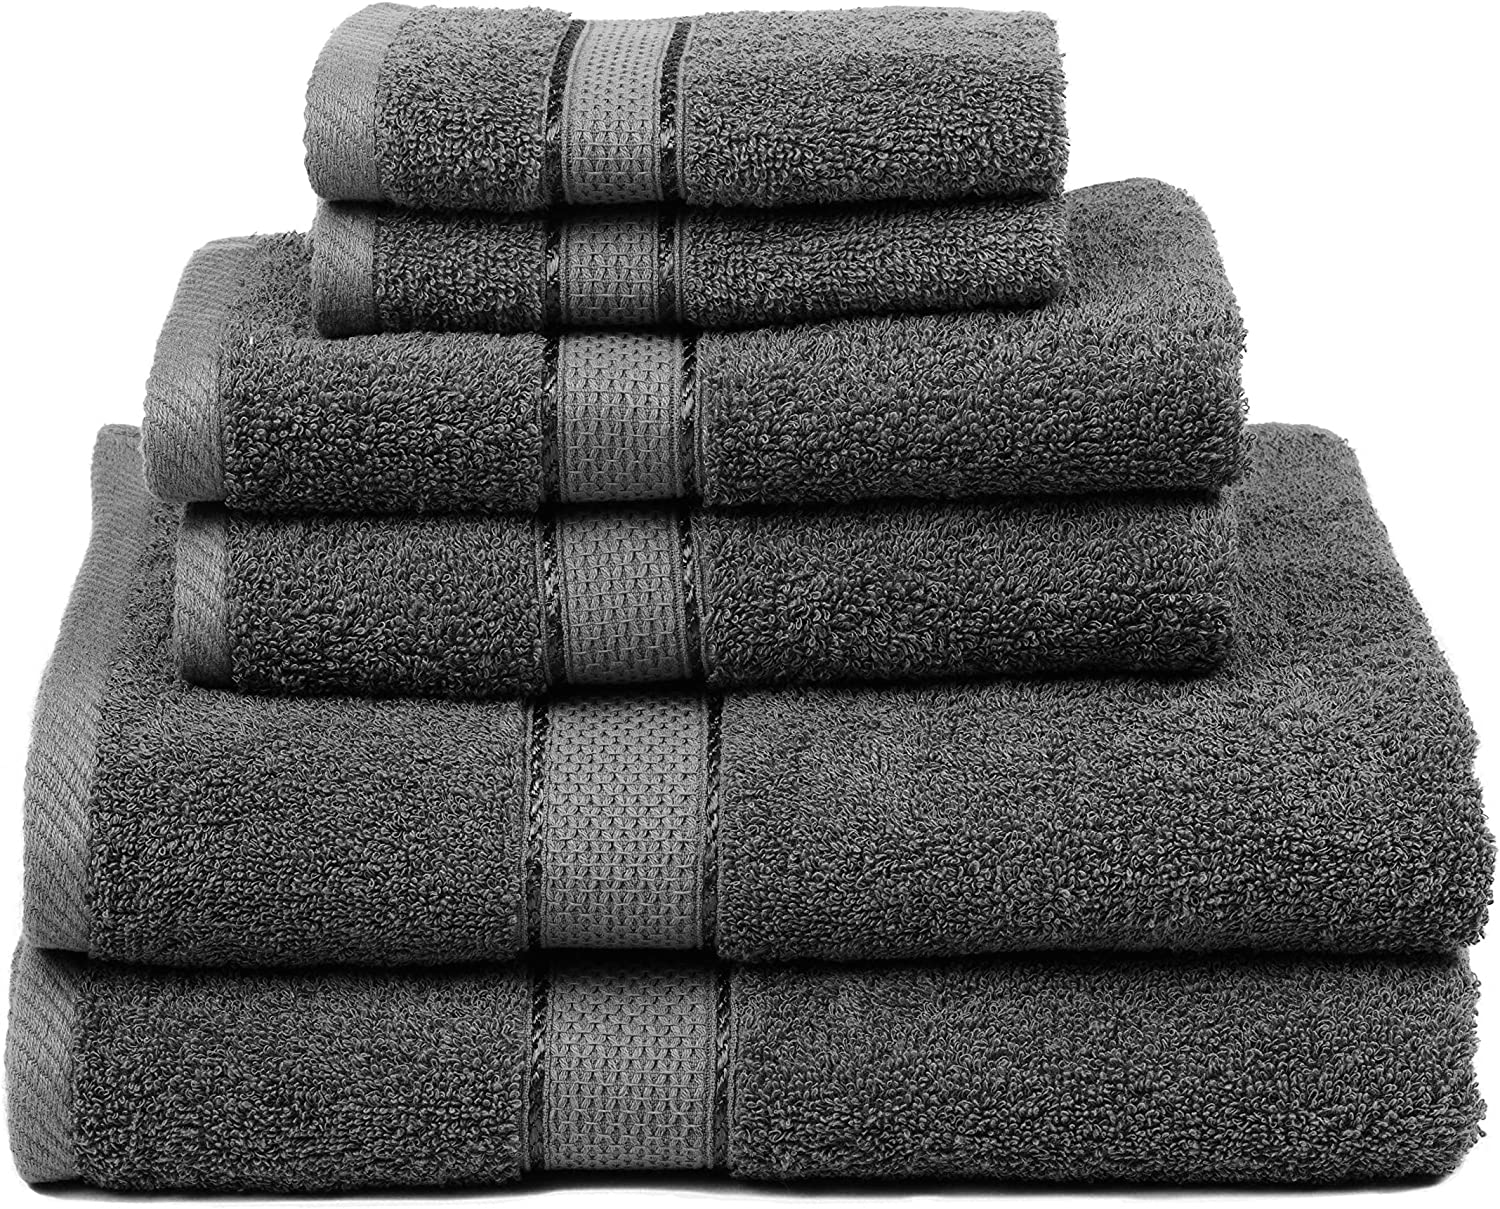 Ultra Absorbent and Eco-Friendly Natural Premium Bamboo Cotton 6 Piece Towel Set White